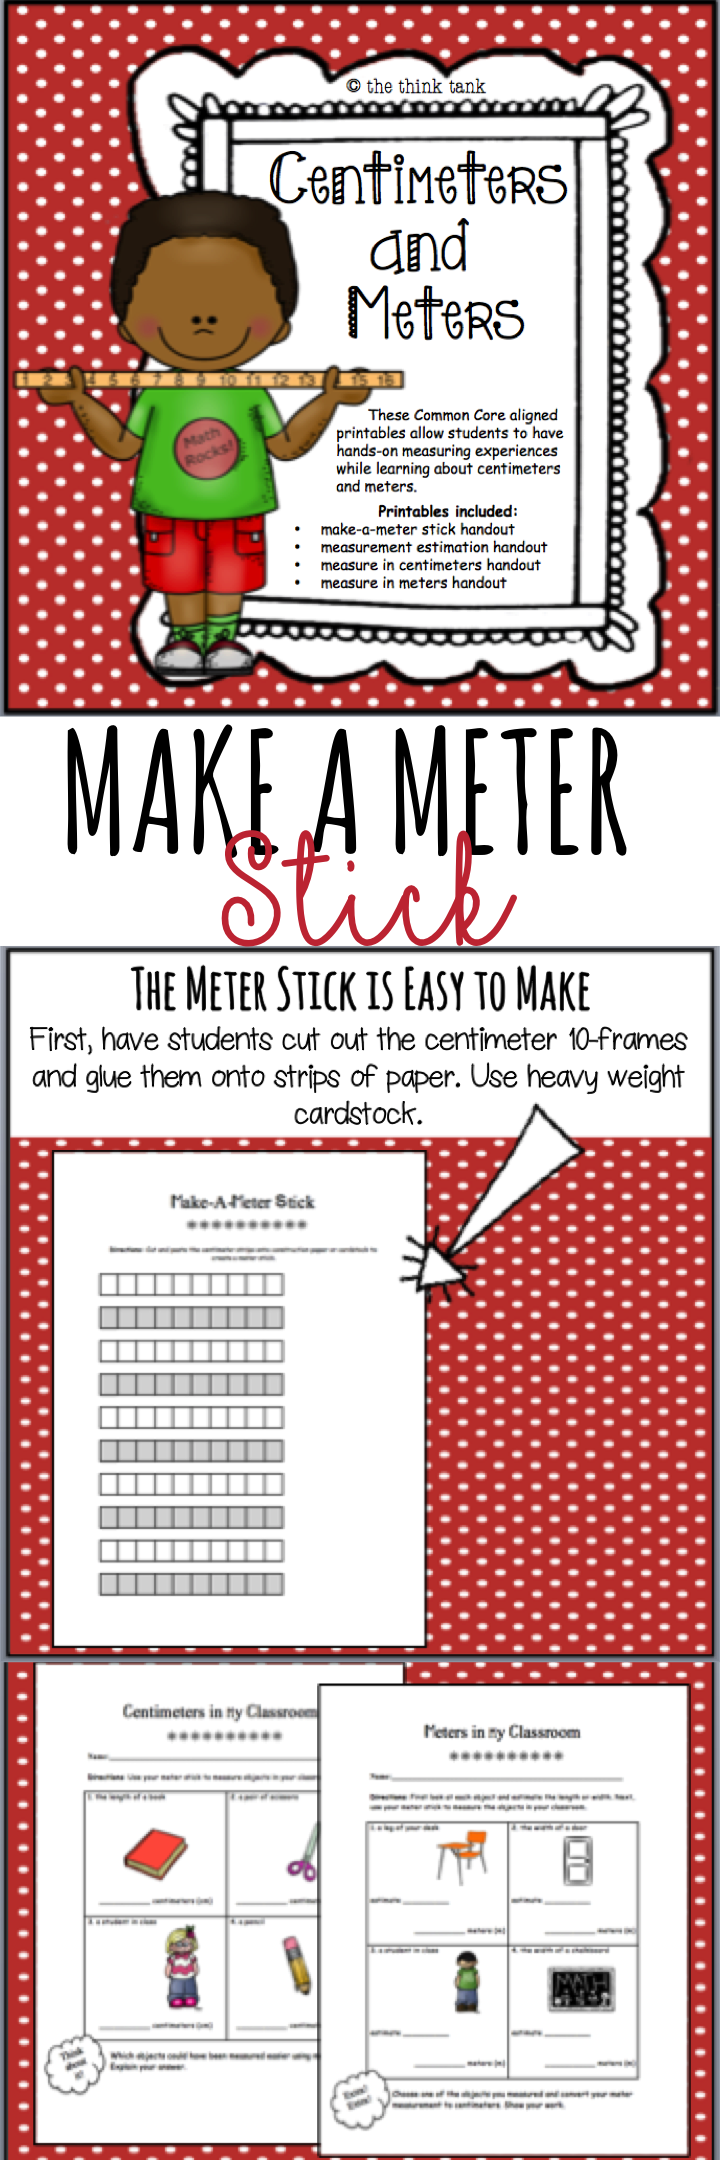 photo about Printable Meter Sticks titled Pin upon Exceptional Math Pursuits